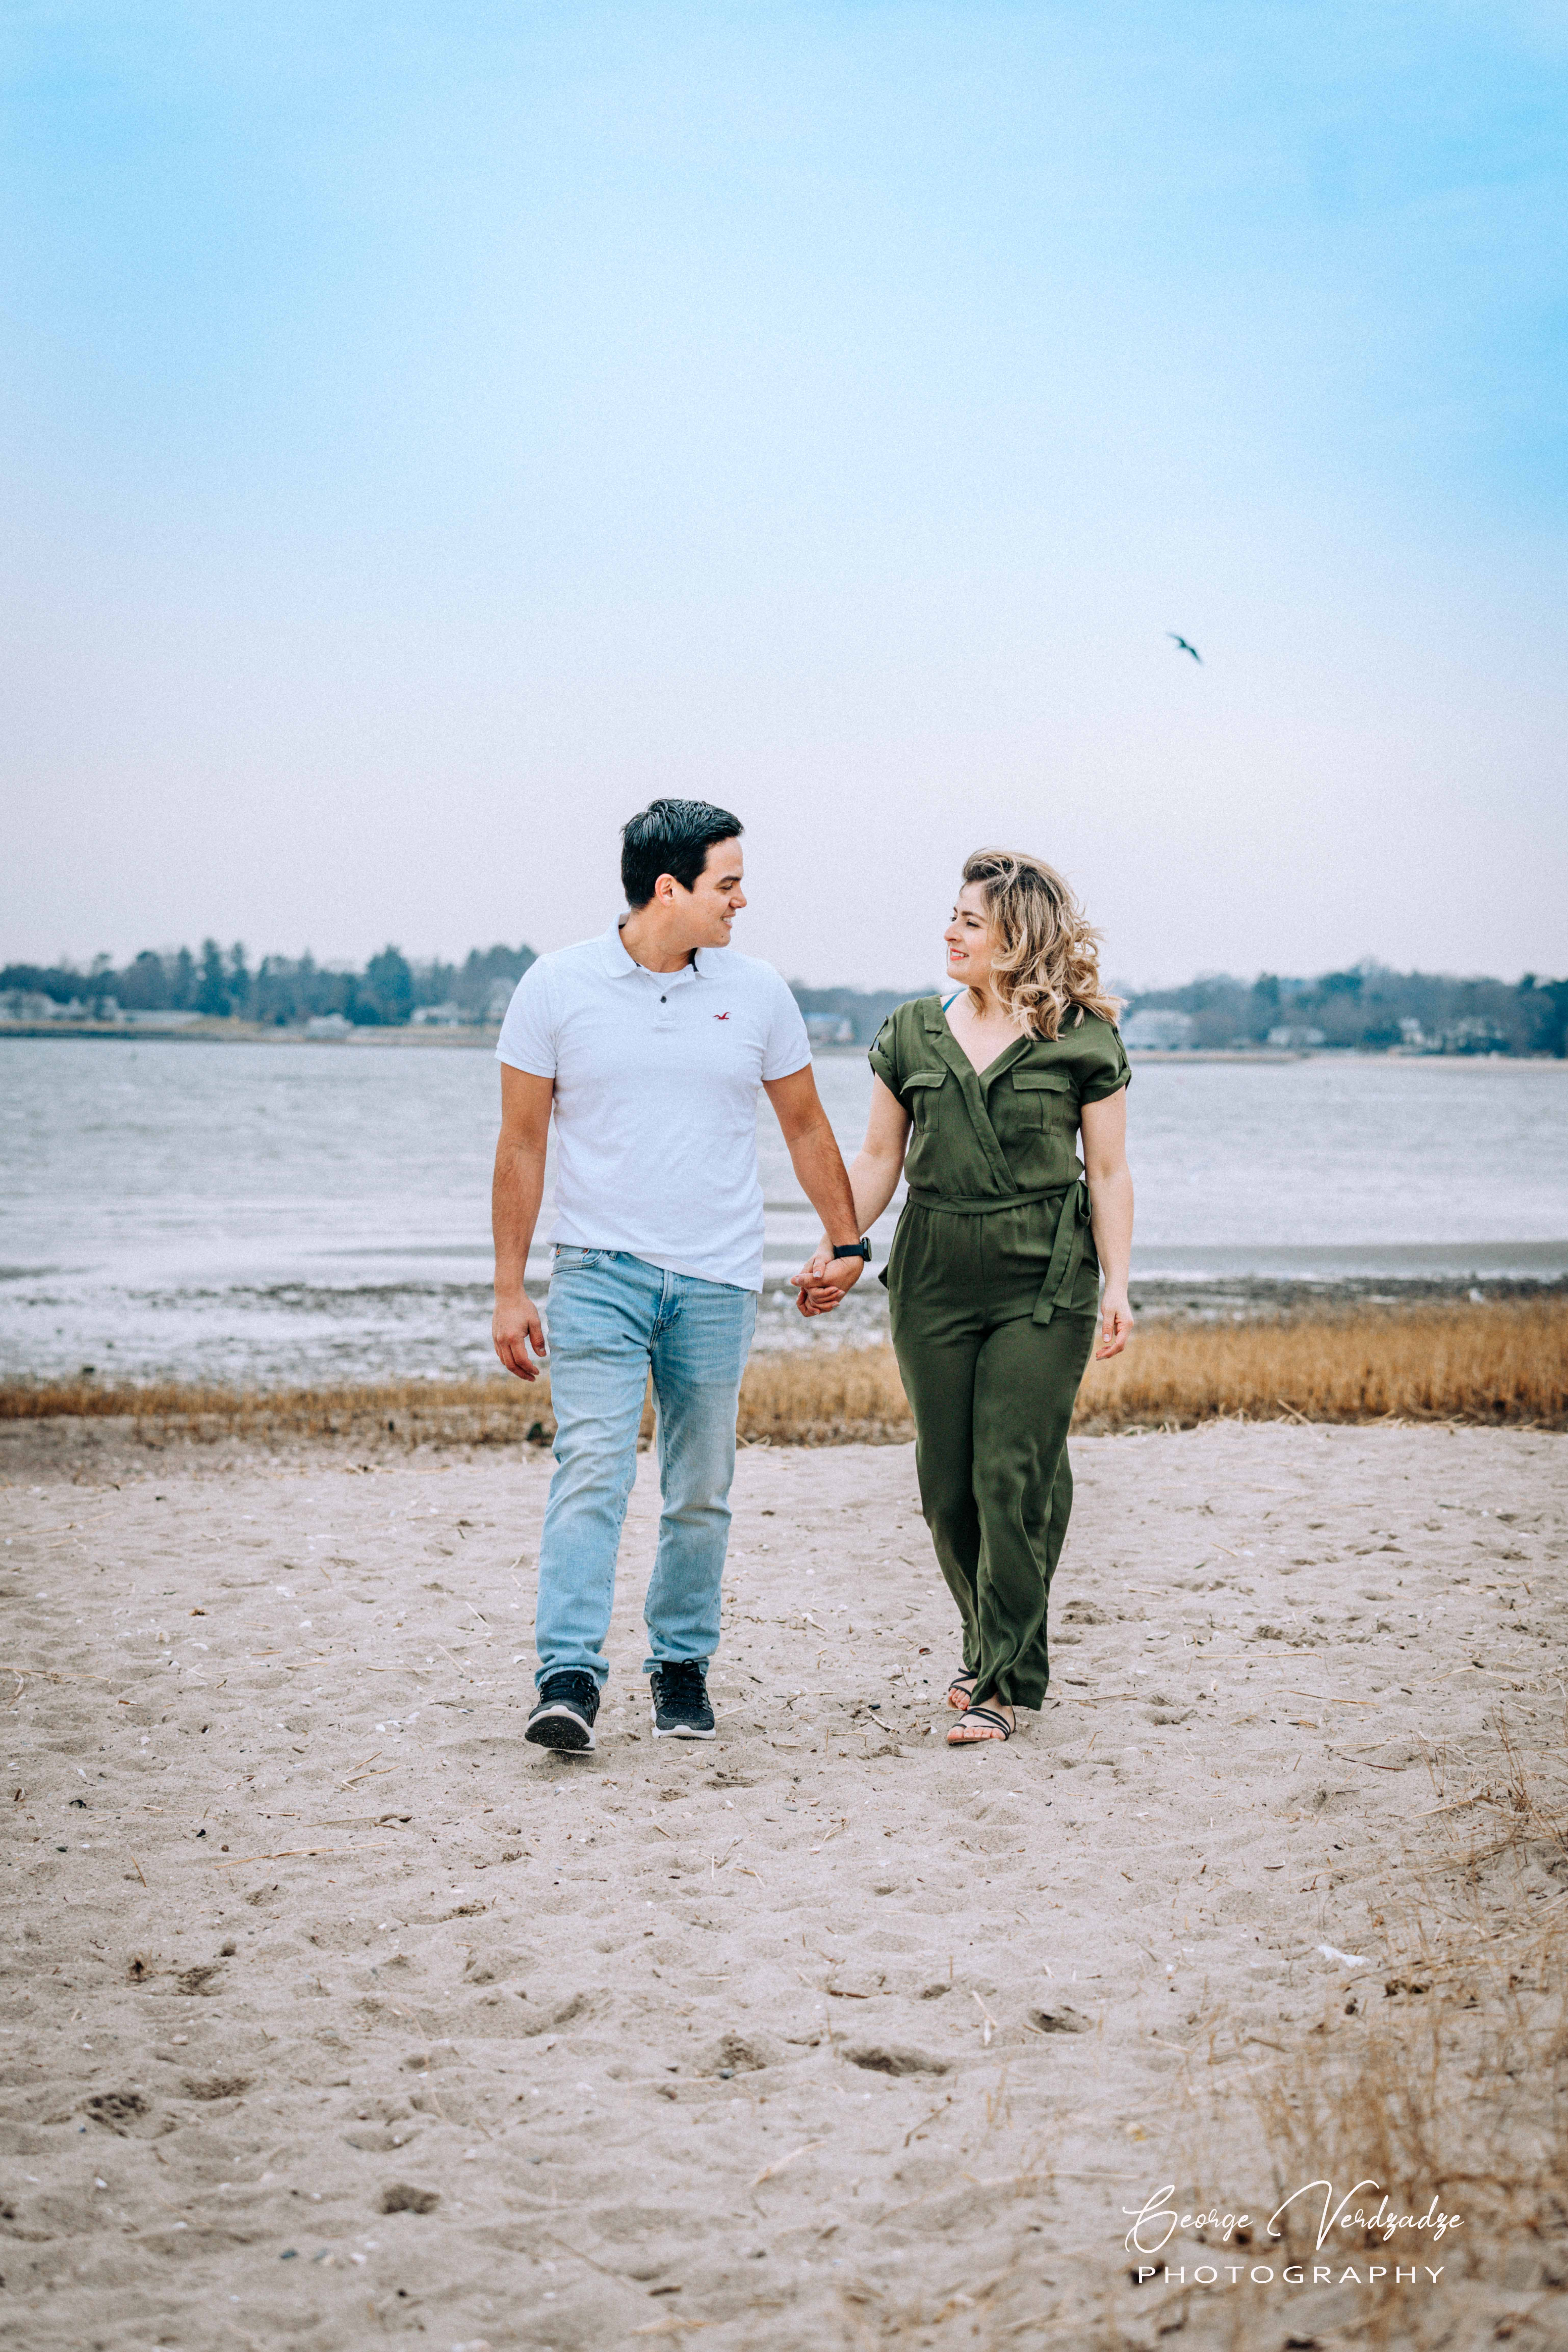 Engagement Photography session at Fairfield beach